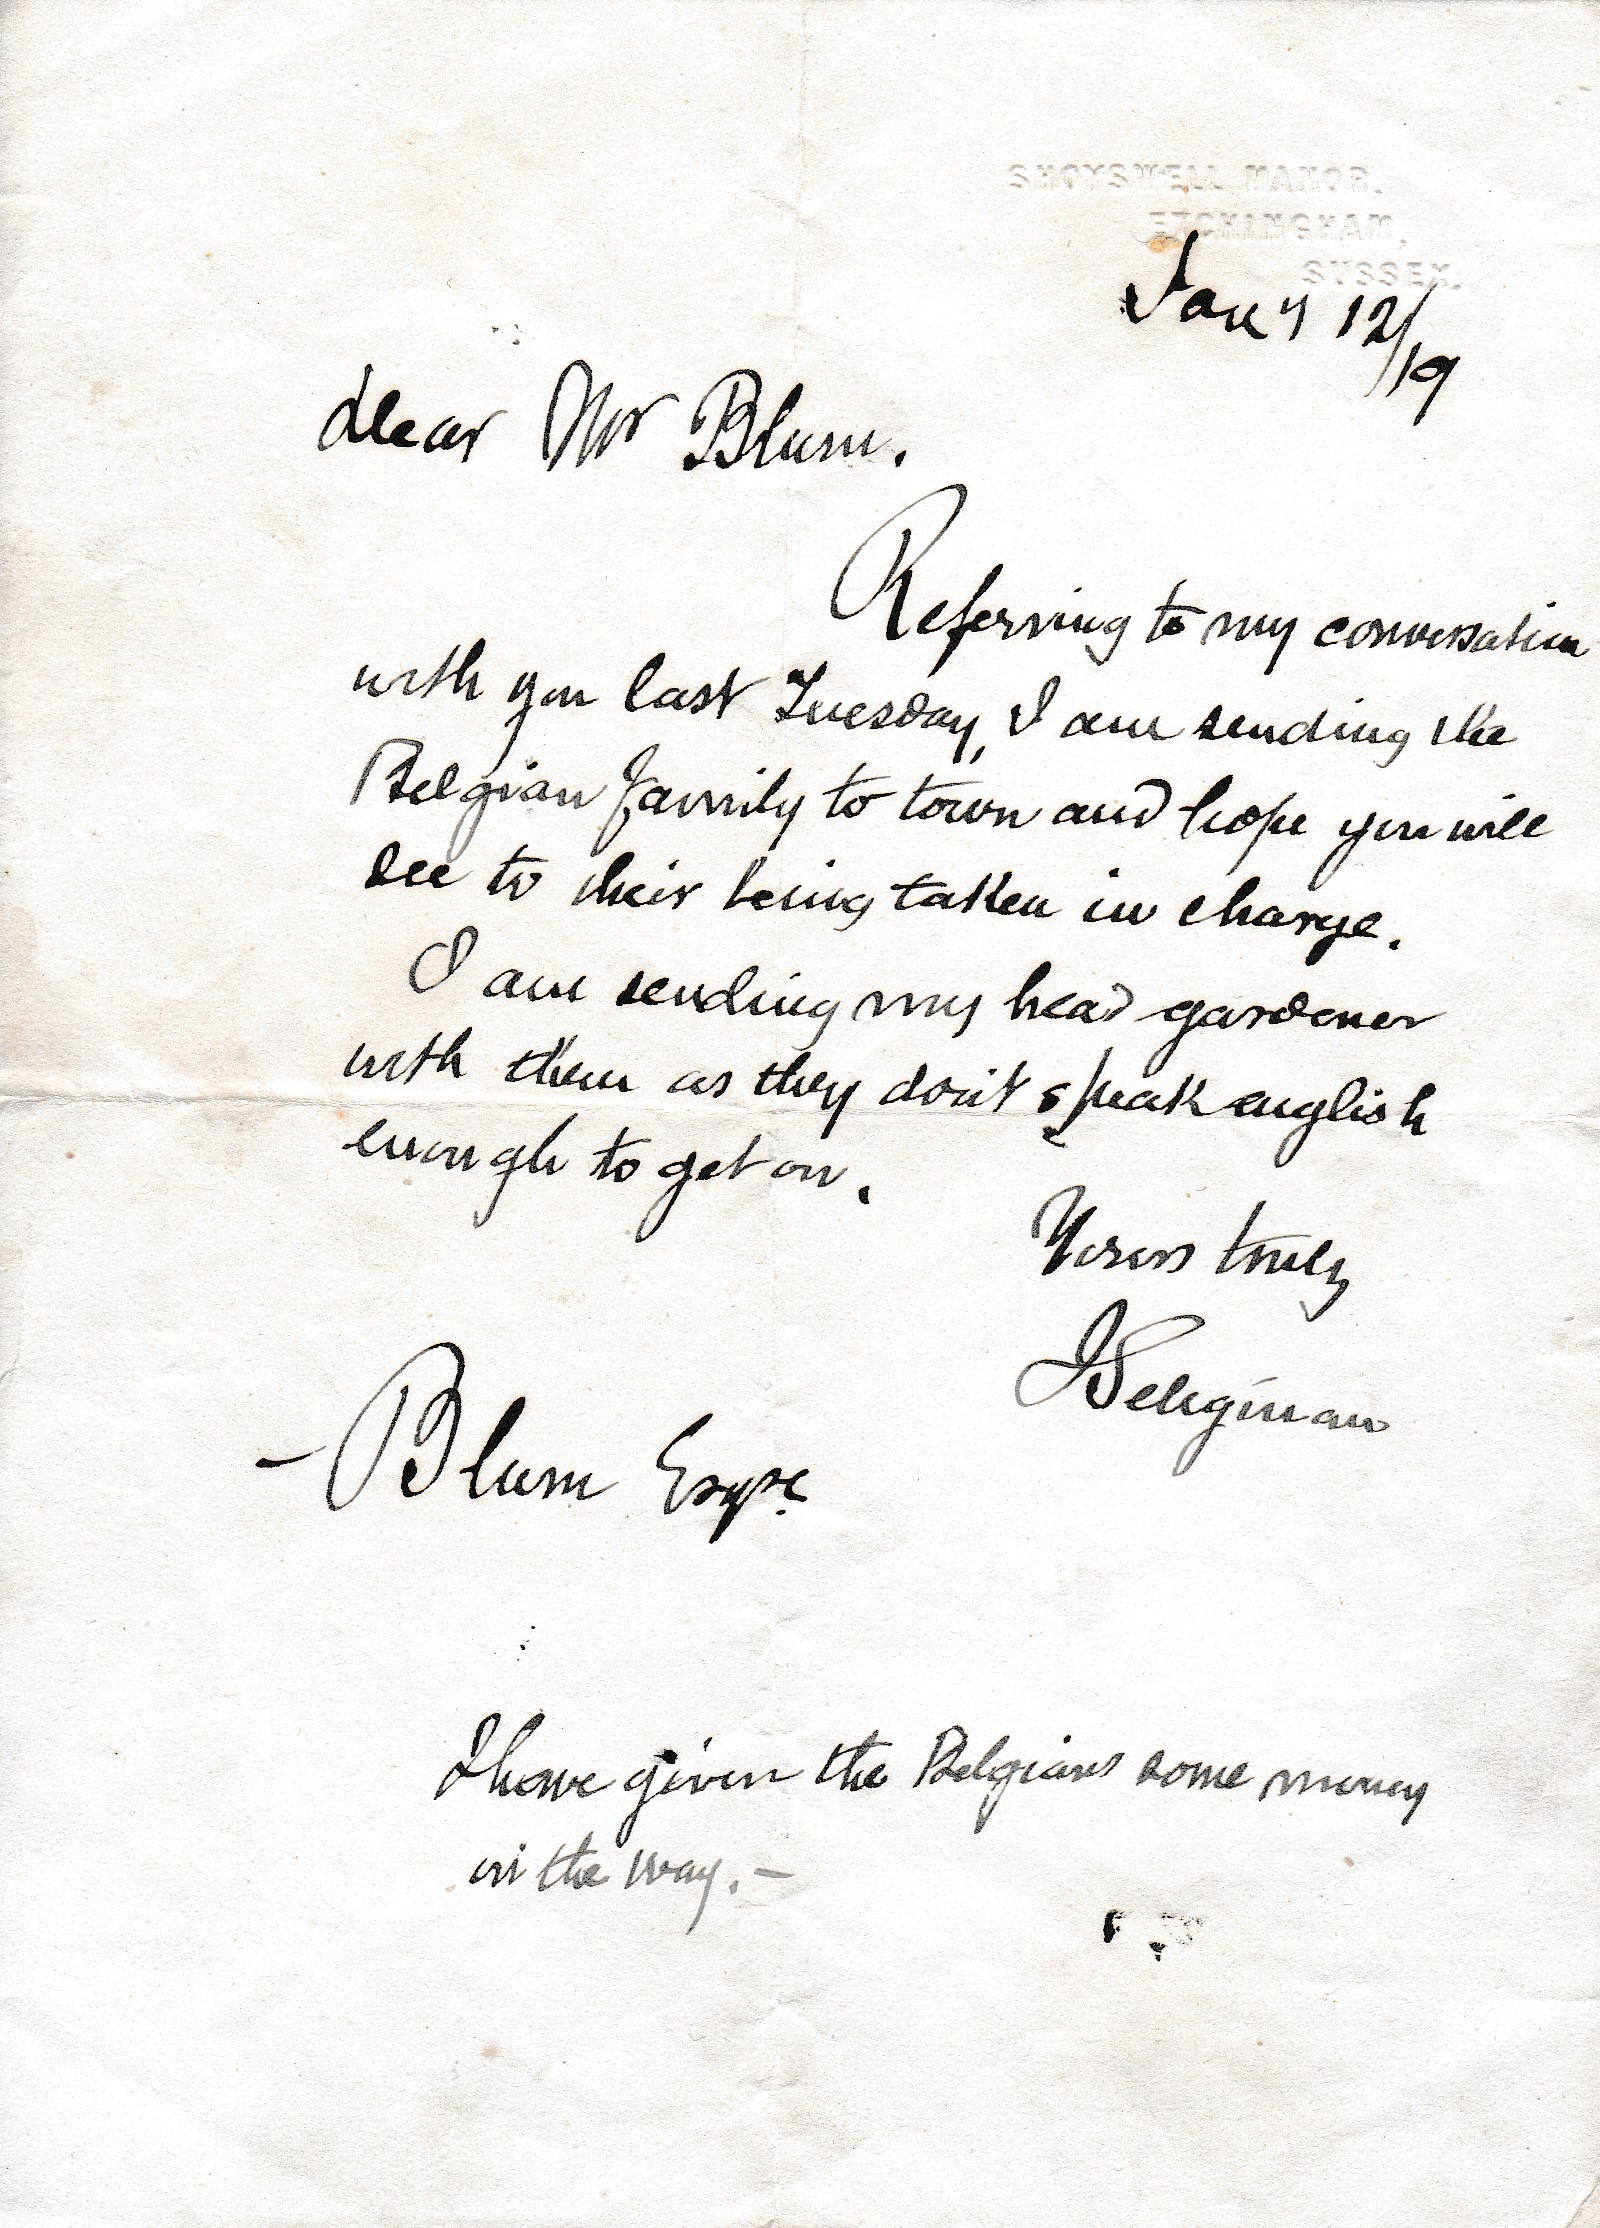 Letter to Jacques Blom related to a Belgian refugee family.